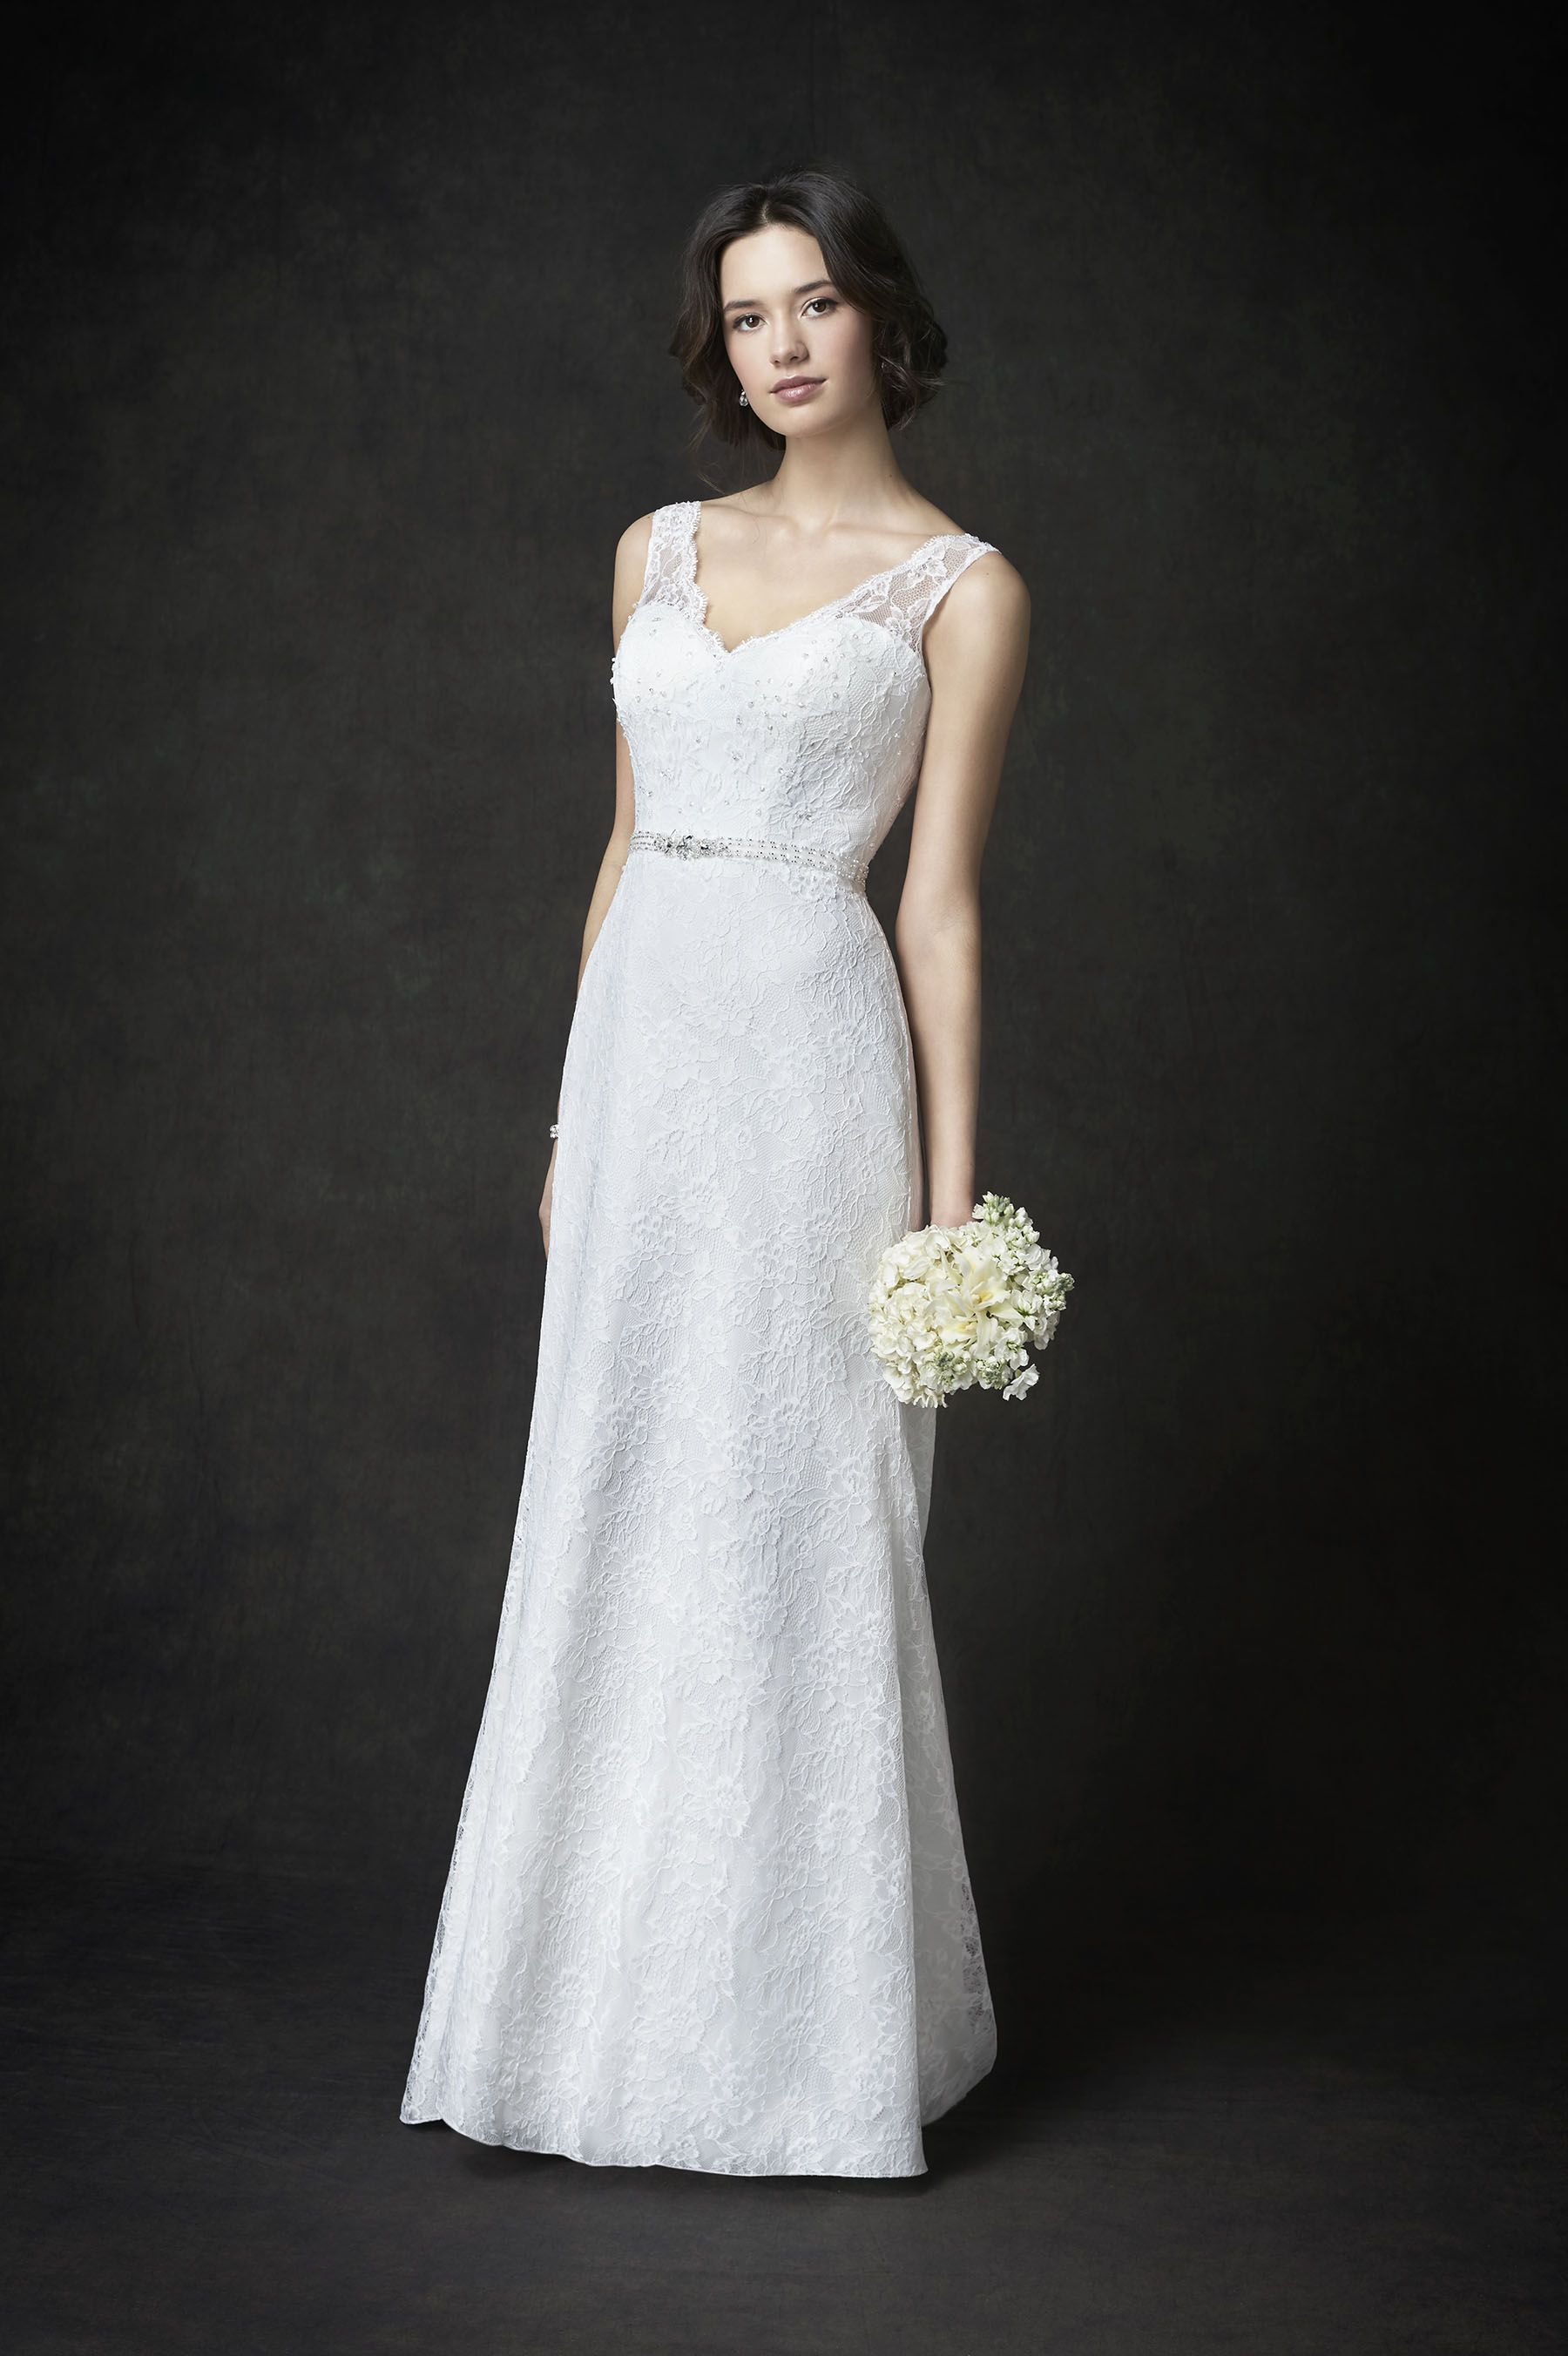 Illusion lace wedding dress  Gallery Style GA  beautiful lace bridal gown with illusion lace